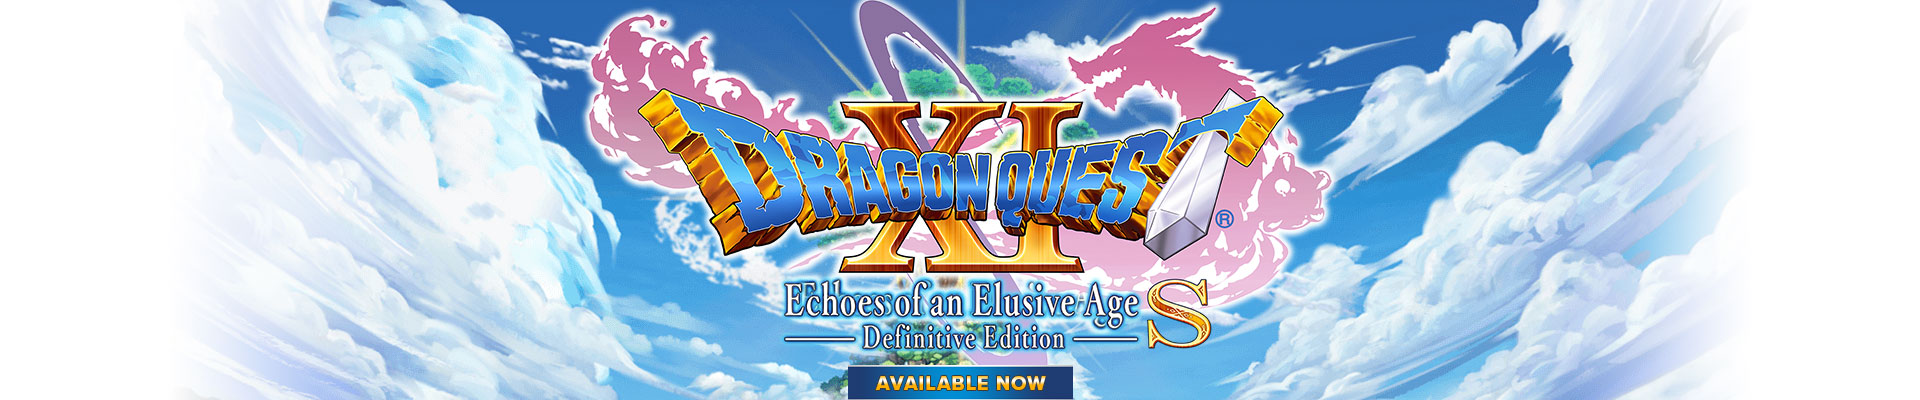 Dragon Quest XI Takeover